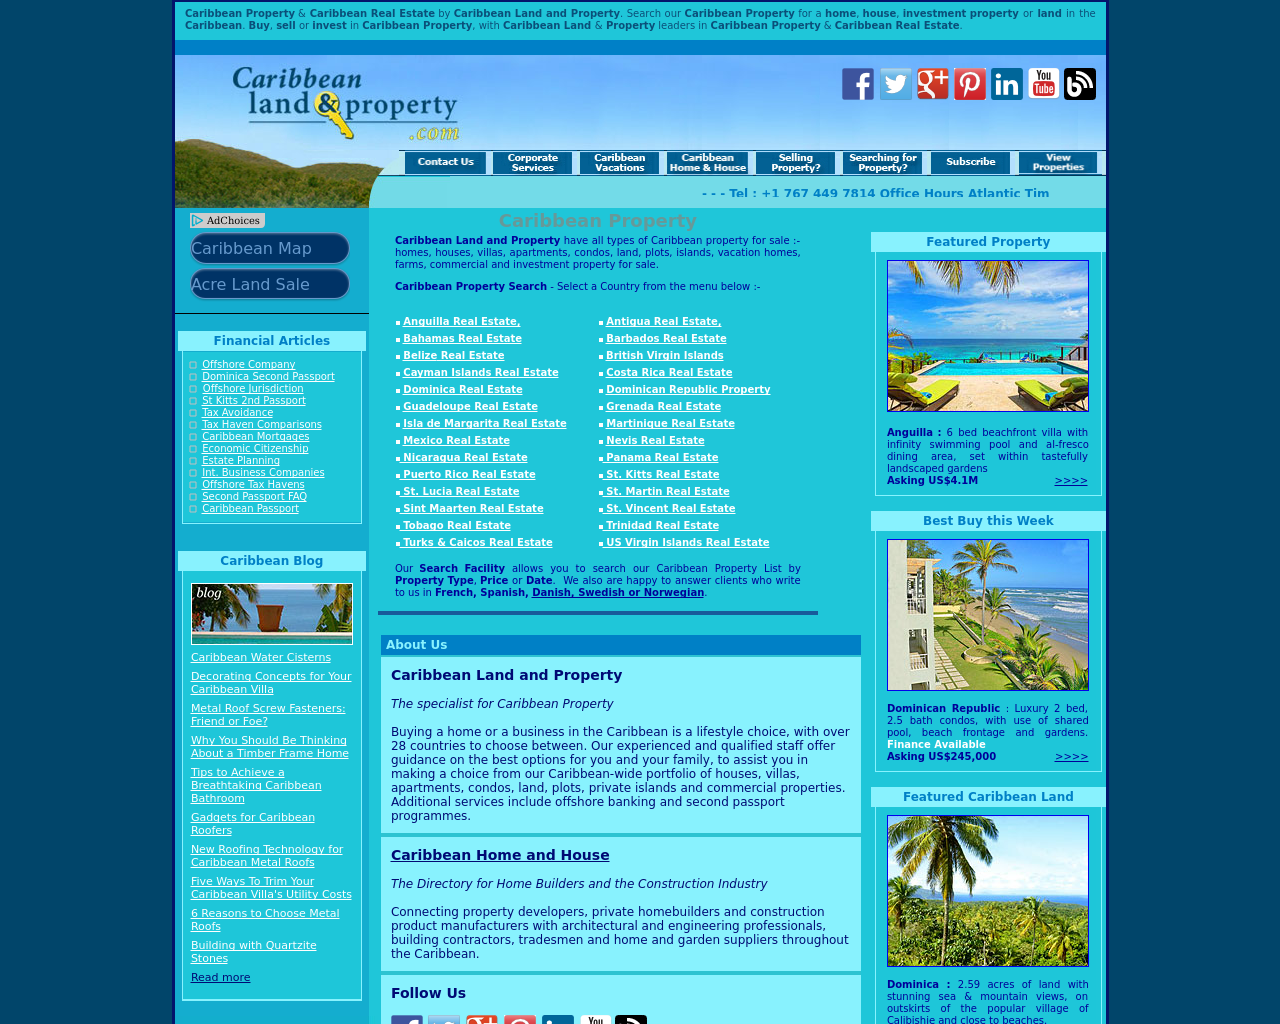 Caribbean-Land-&-Property-Advertising-Reviews-Pricing